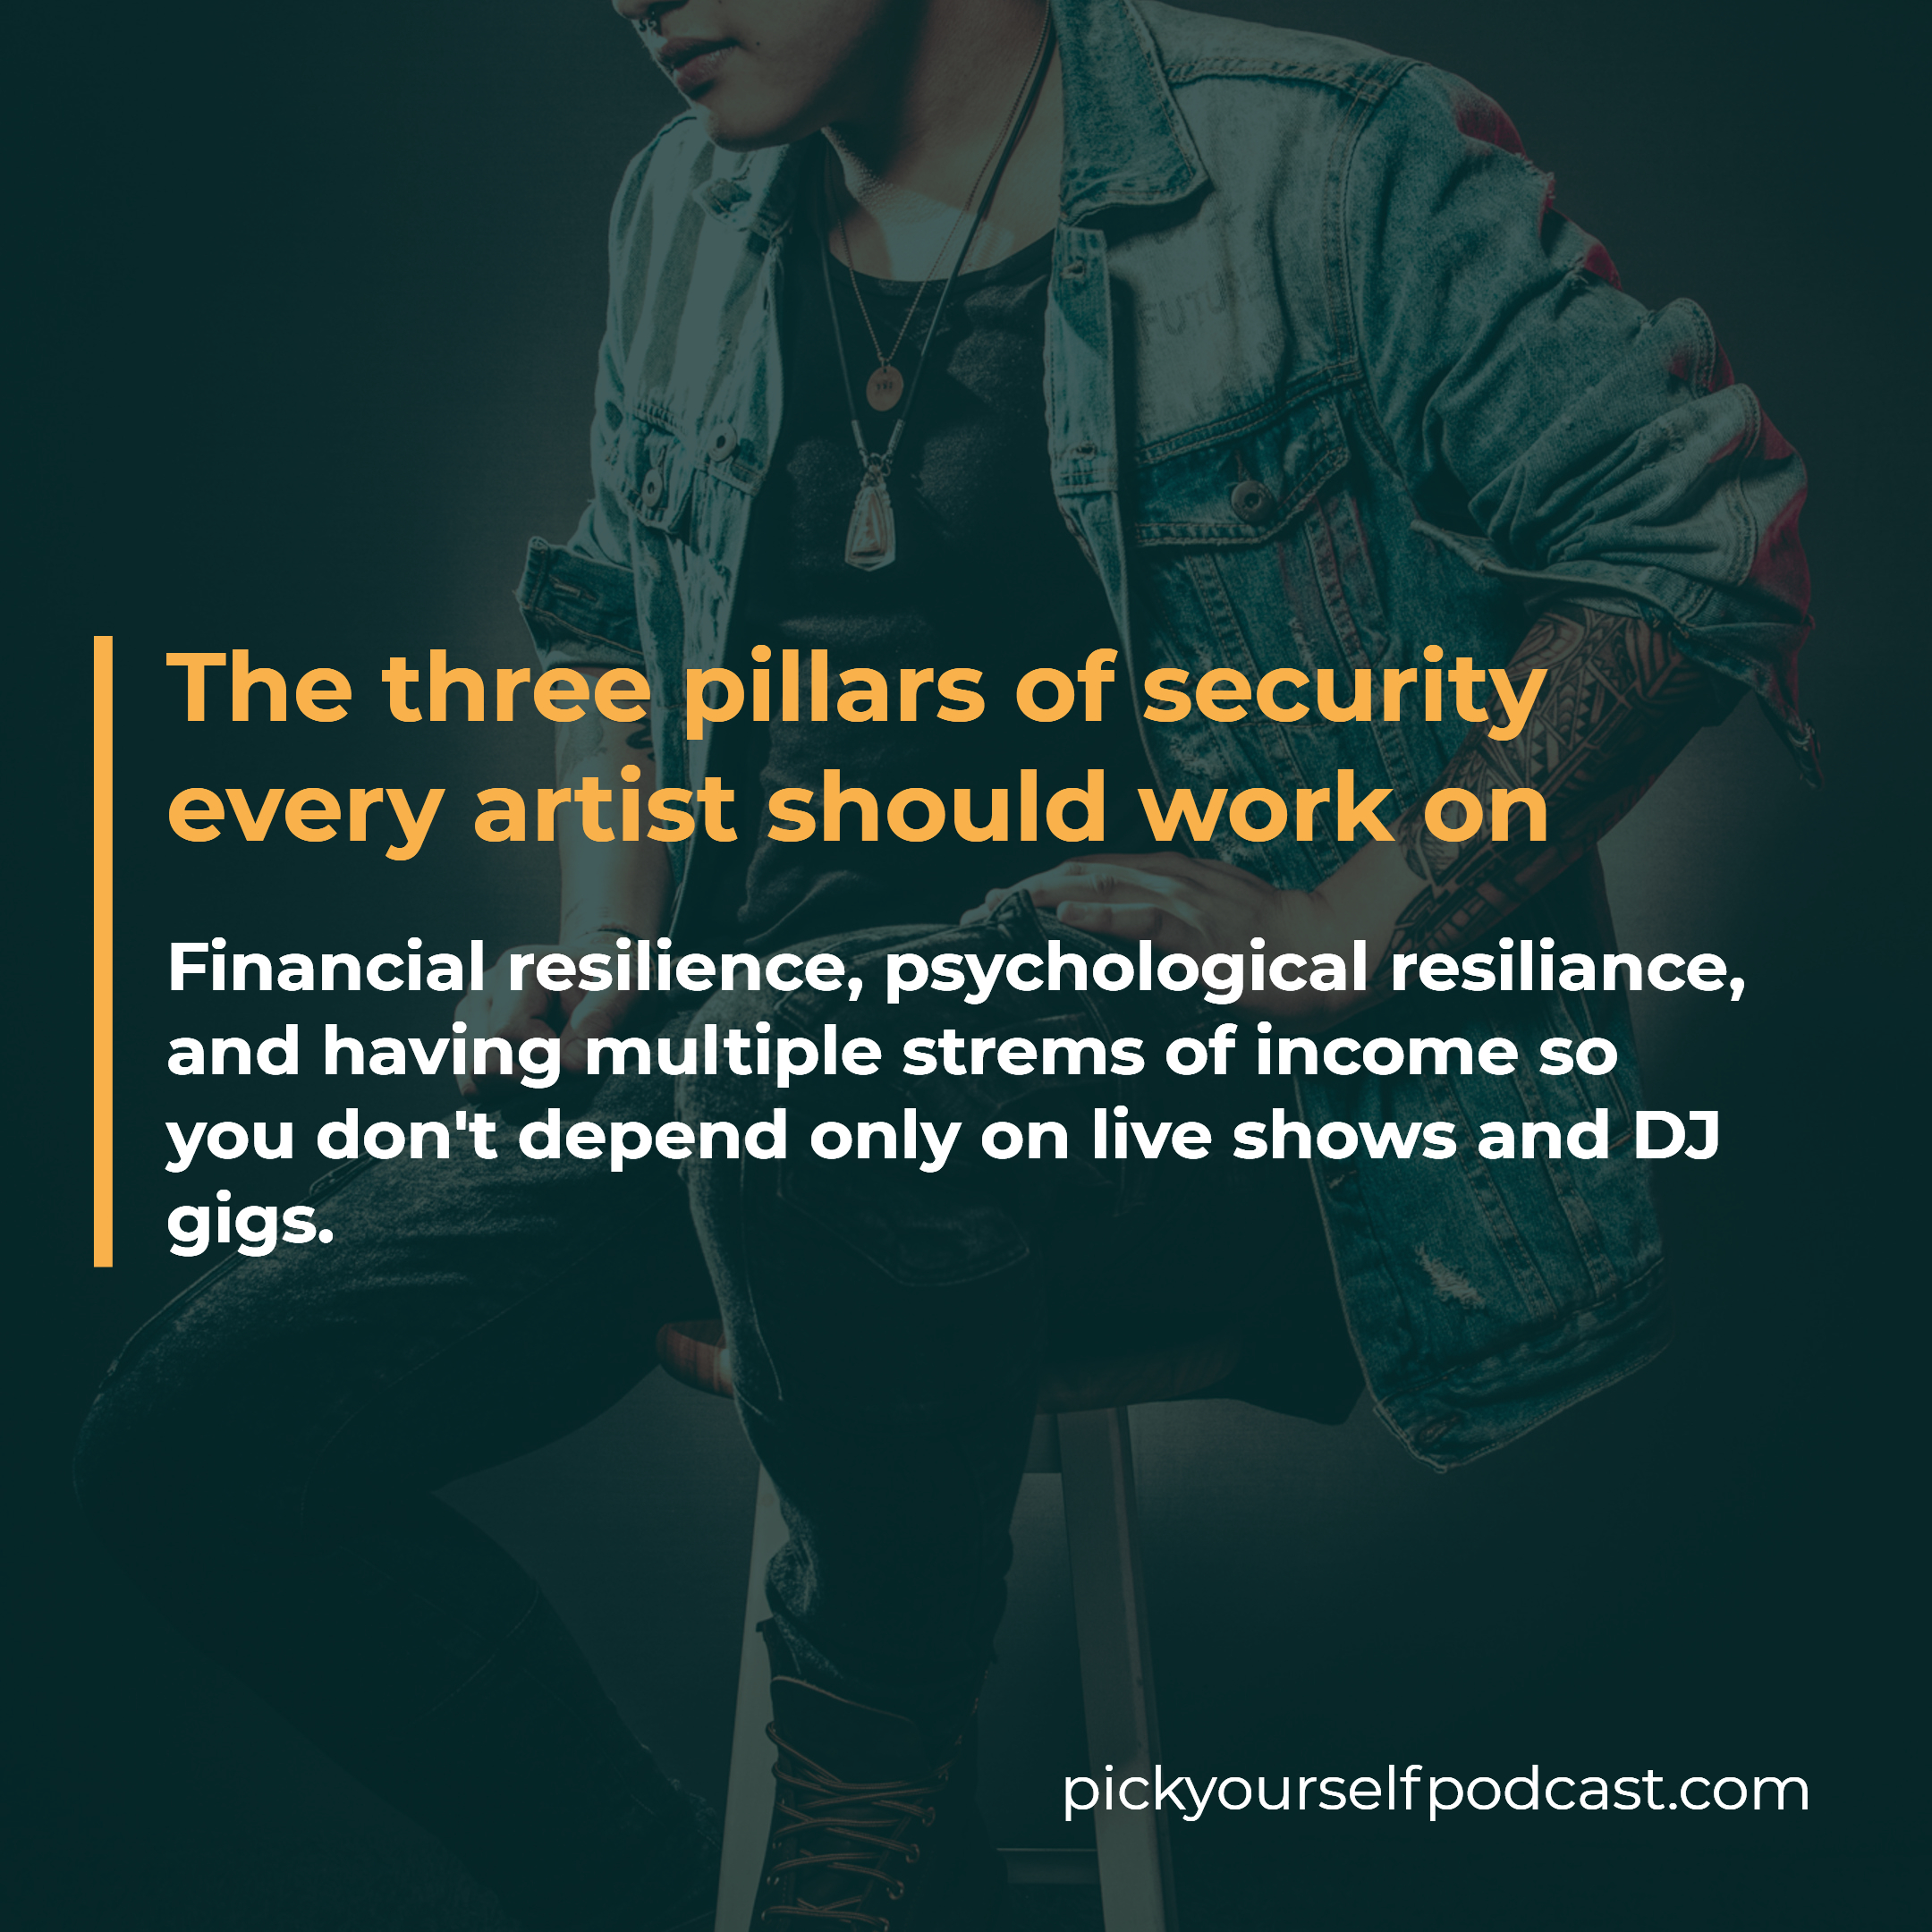 how to survive a crisis as an artist visual 02. It says: The three pillars of security you need are financial resilience, psychological resilience, and having multiple streams of income.